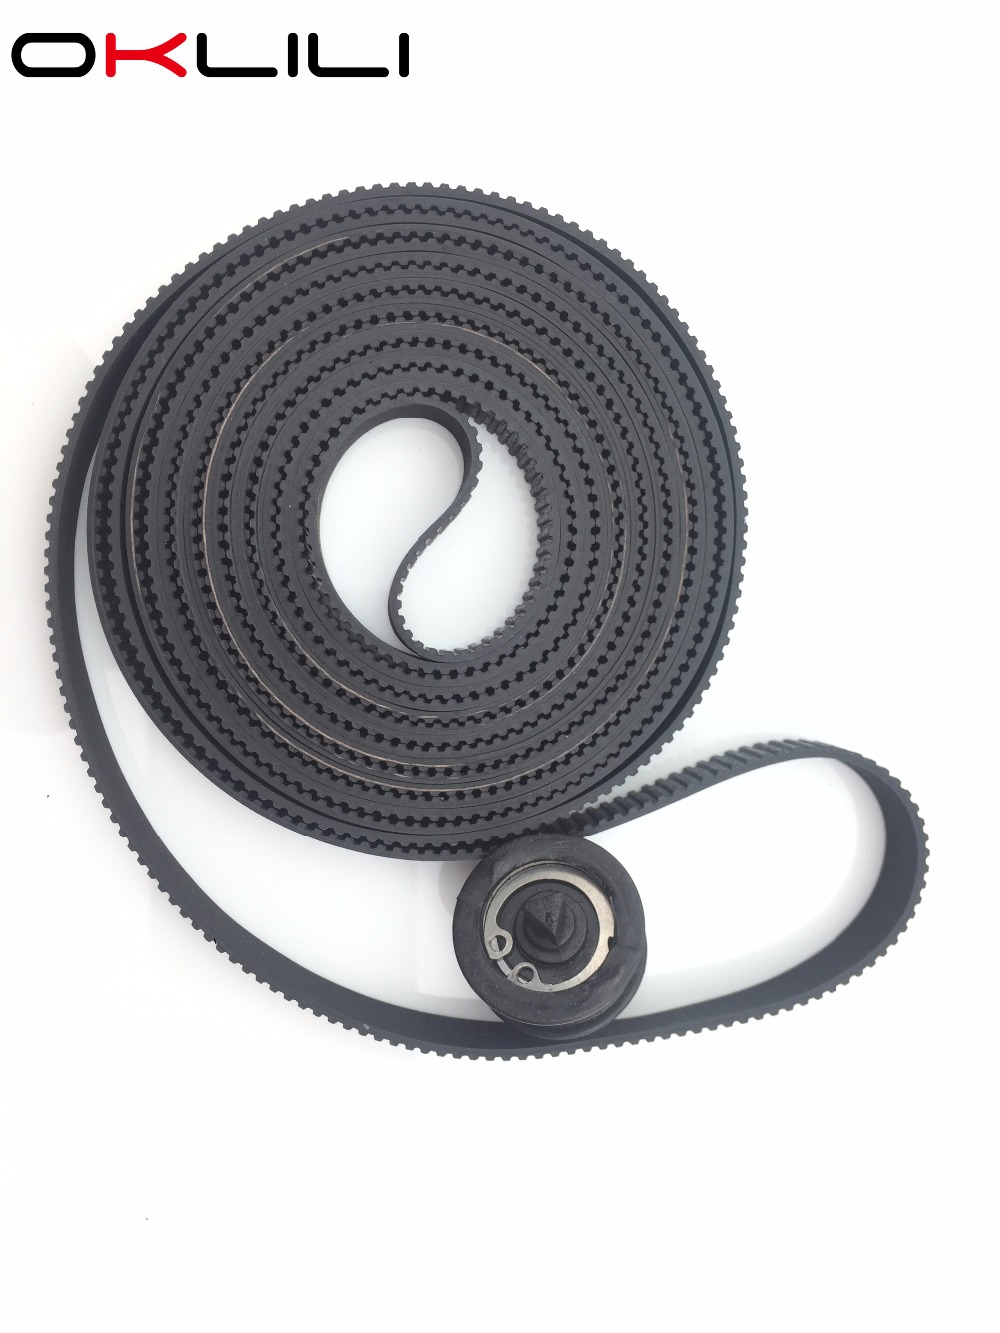 C7770-60014 Carriage Belt 42inch B0 Size with Pulley for HP DesignJet 500 500PS 800 800PS 510 510PS 815 CC800PS 820 815MFP 820MFP